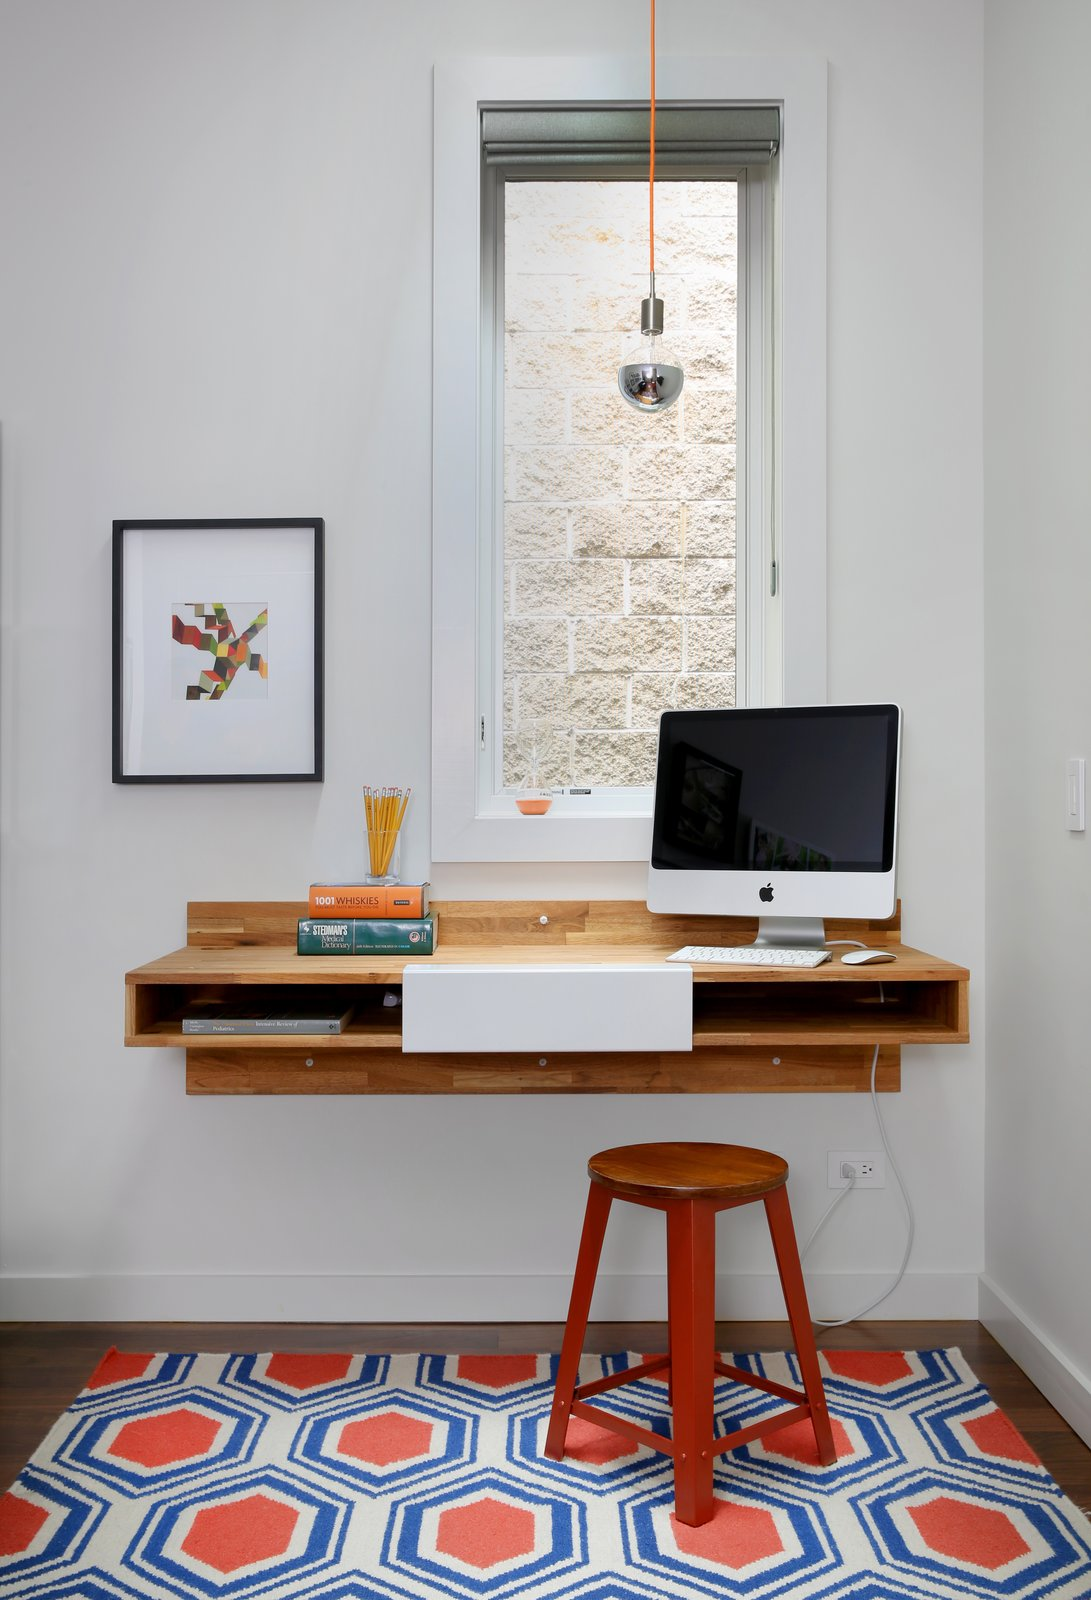 A Mash Studio Wall-Mounted desk offers a place to study. The rug is from One King's Lane and a SoCo Modern Socket pendant illuminates the room. Tagged: Office, Study, and Desk. 10 Essential Tips For Creating a Hardworking Home Office - Photo 2 of 11